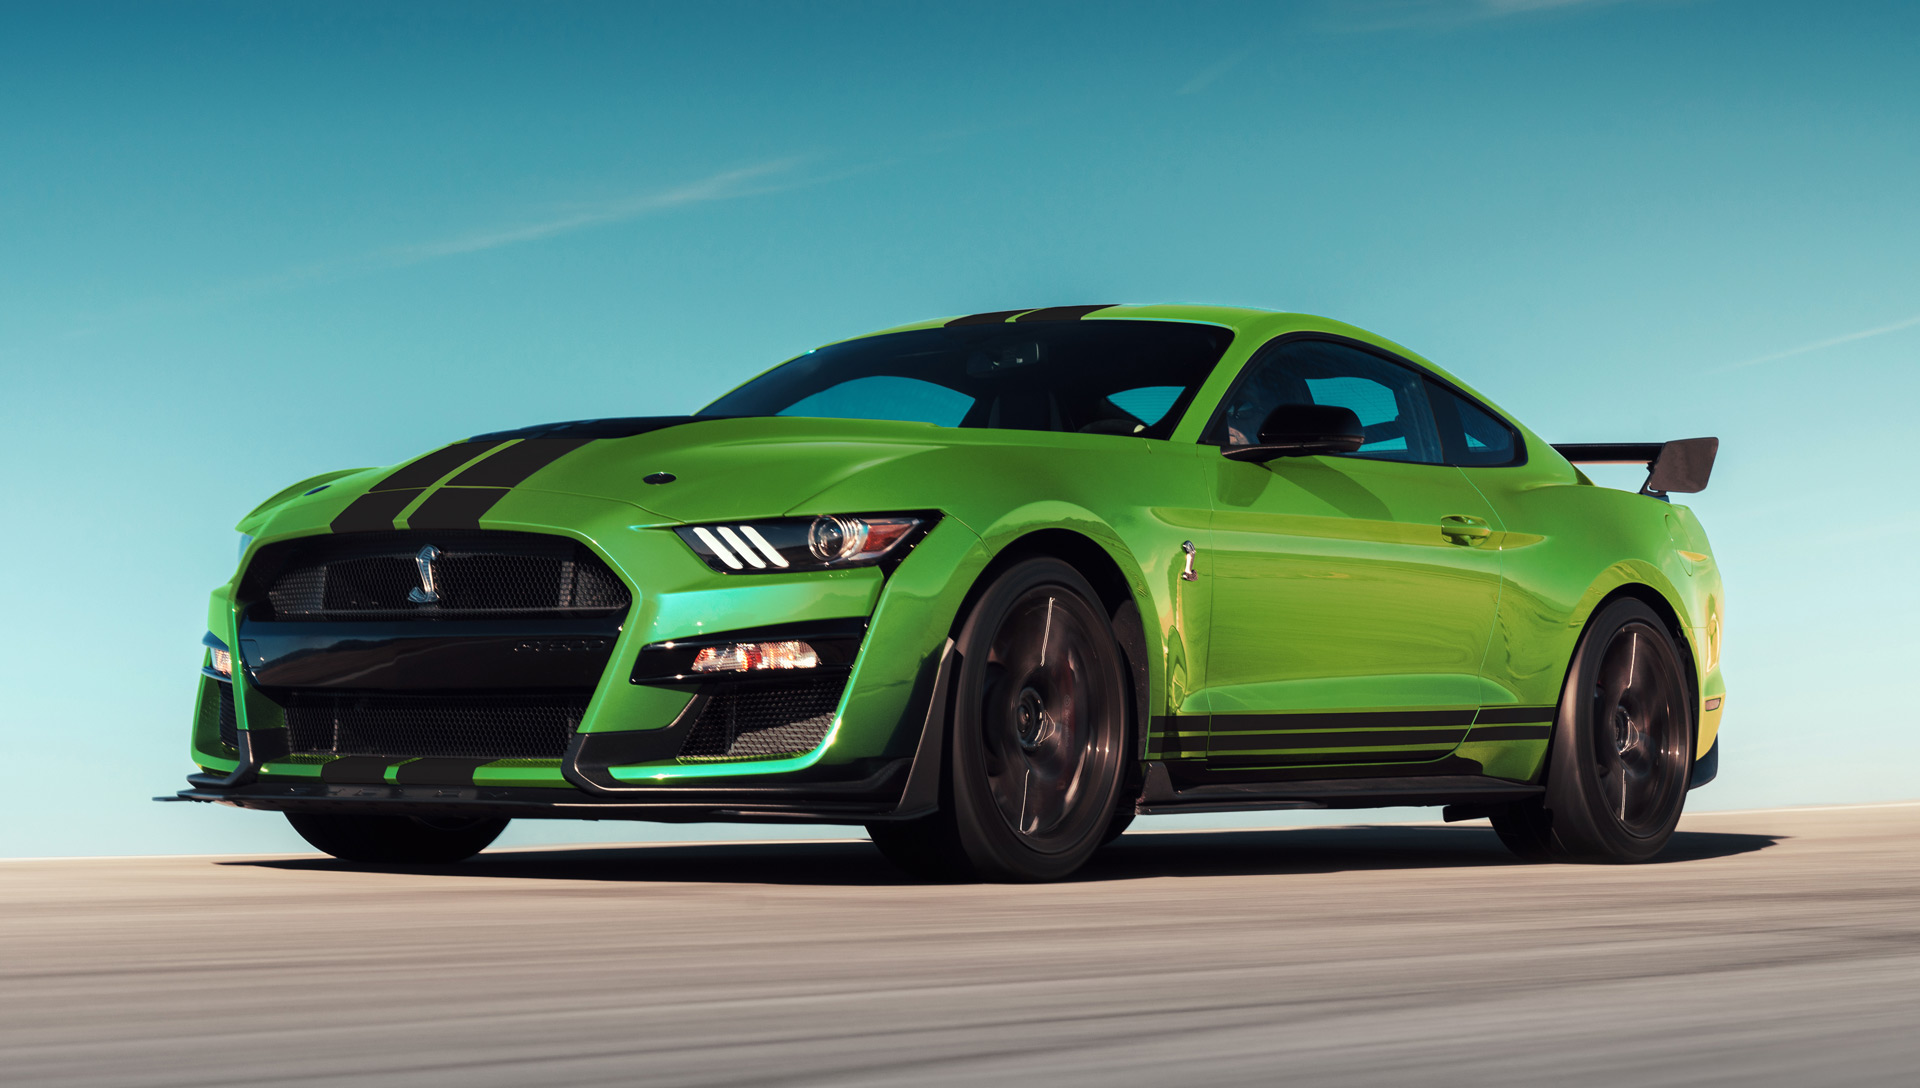 Ford reveals grabber lime paint for 2020 mustang just in time for st patricks day